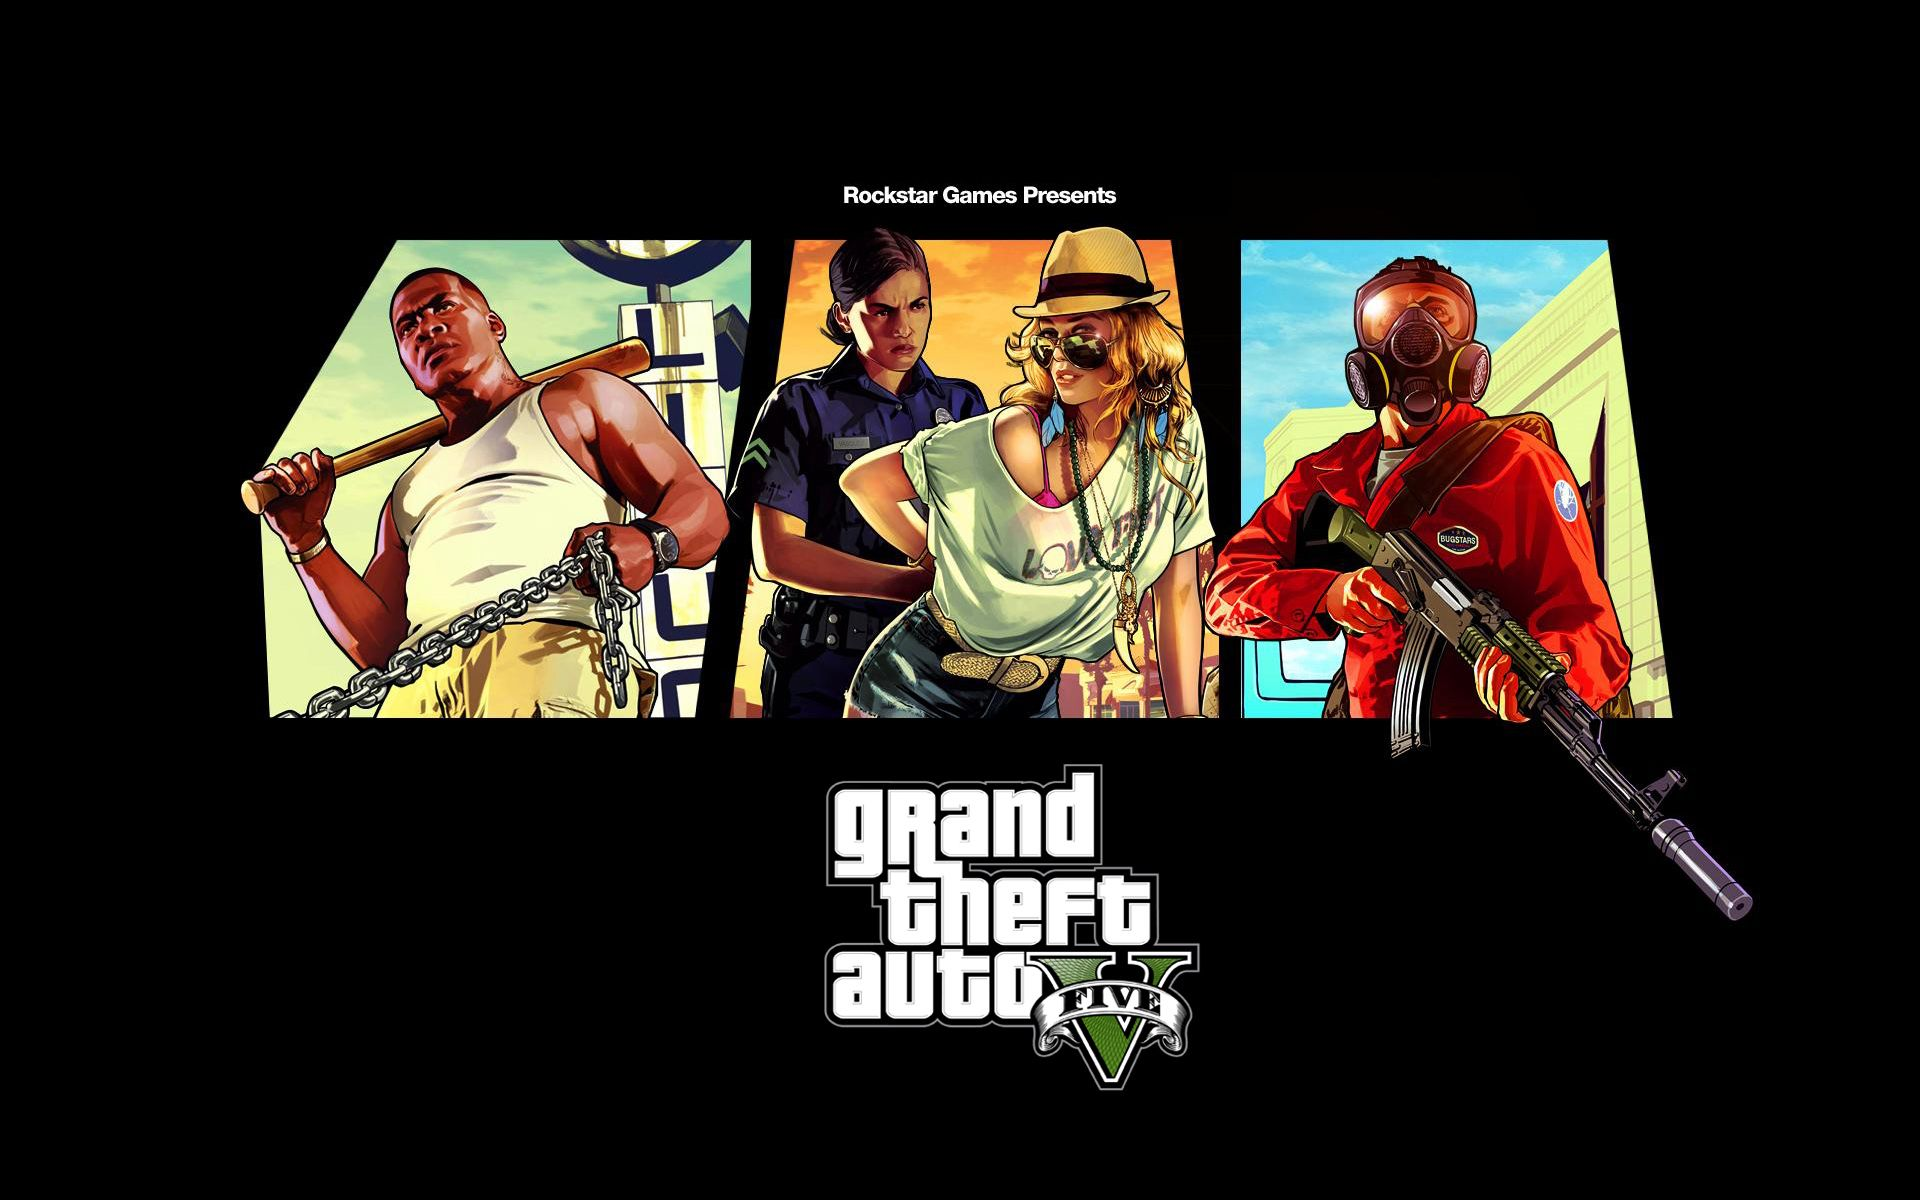 Download image gta5 pc android iphone and ipad wallpapers and - Games Hd Grand Theft Auto 5 Wallpaper Cartoon Wallpapers Pinterest Cartoon Wallpaper Free Hd Wallpapers And Image Archive